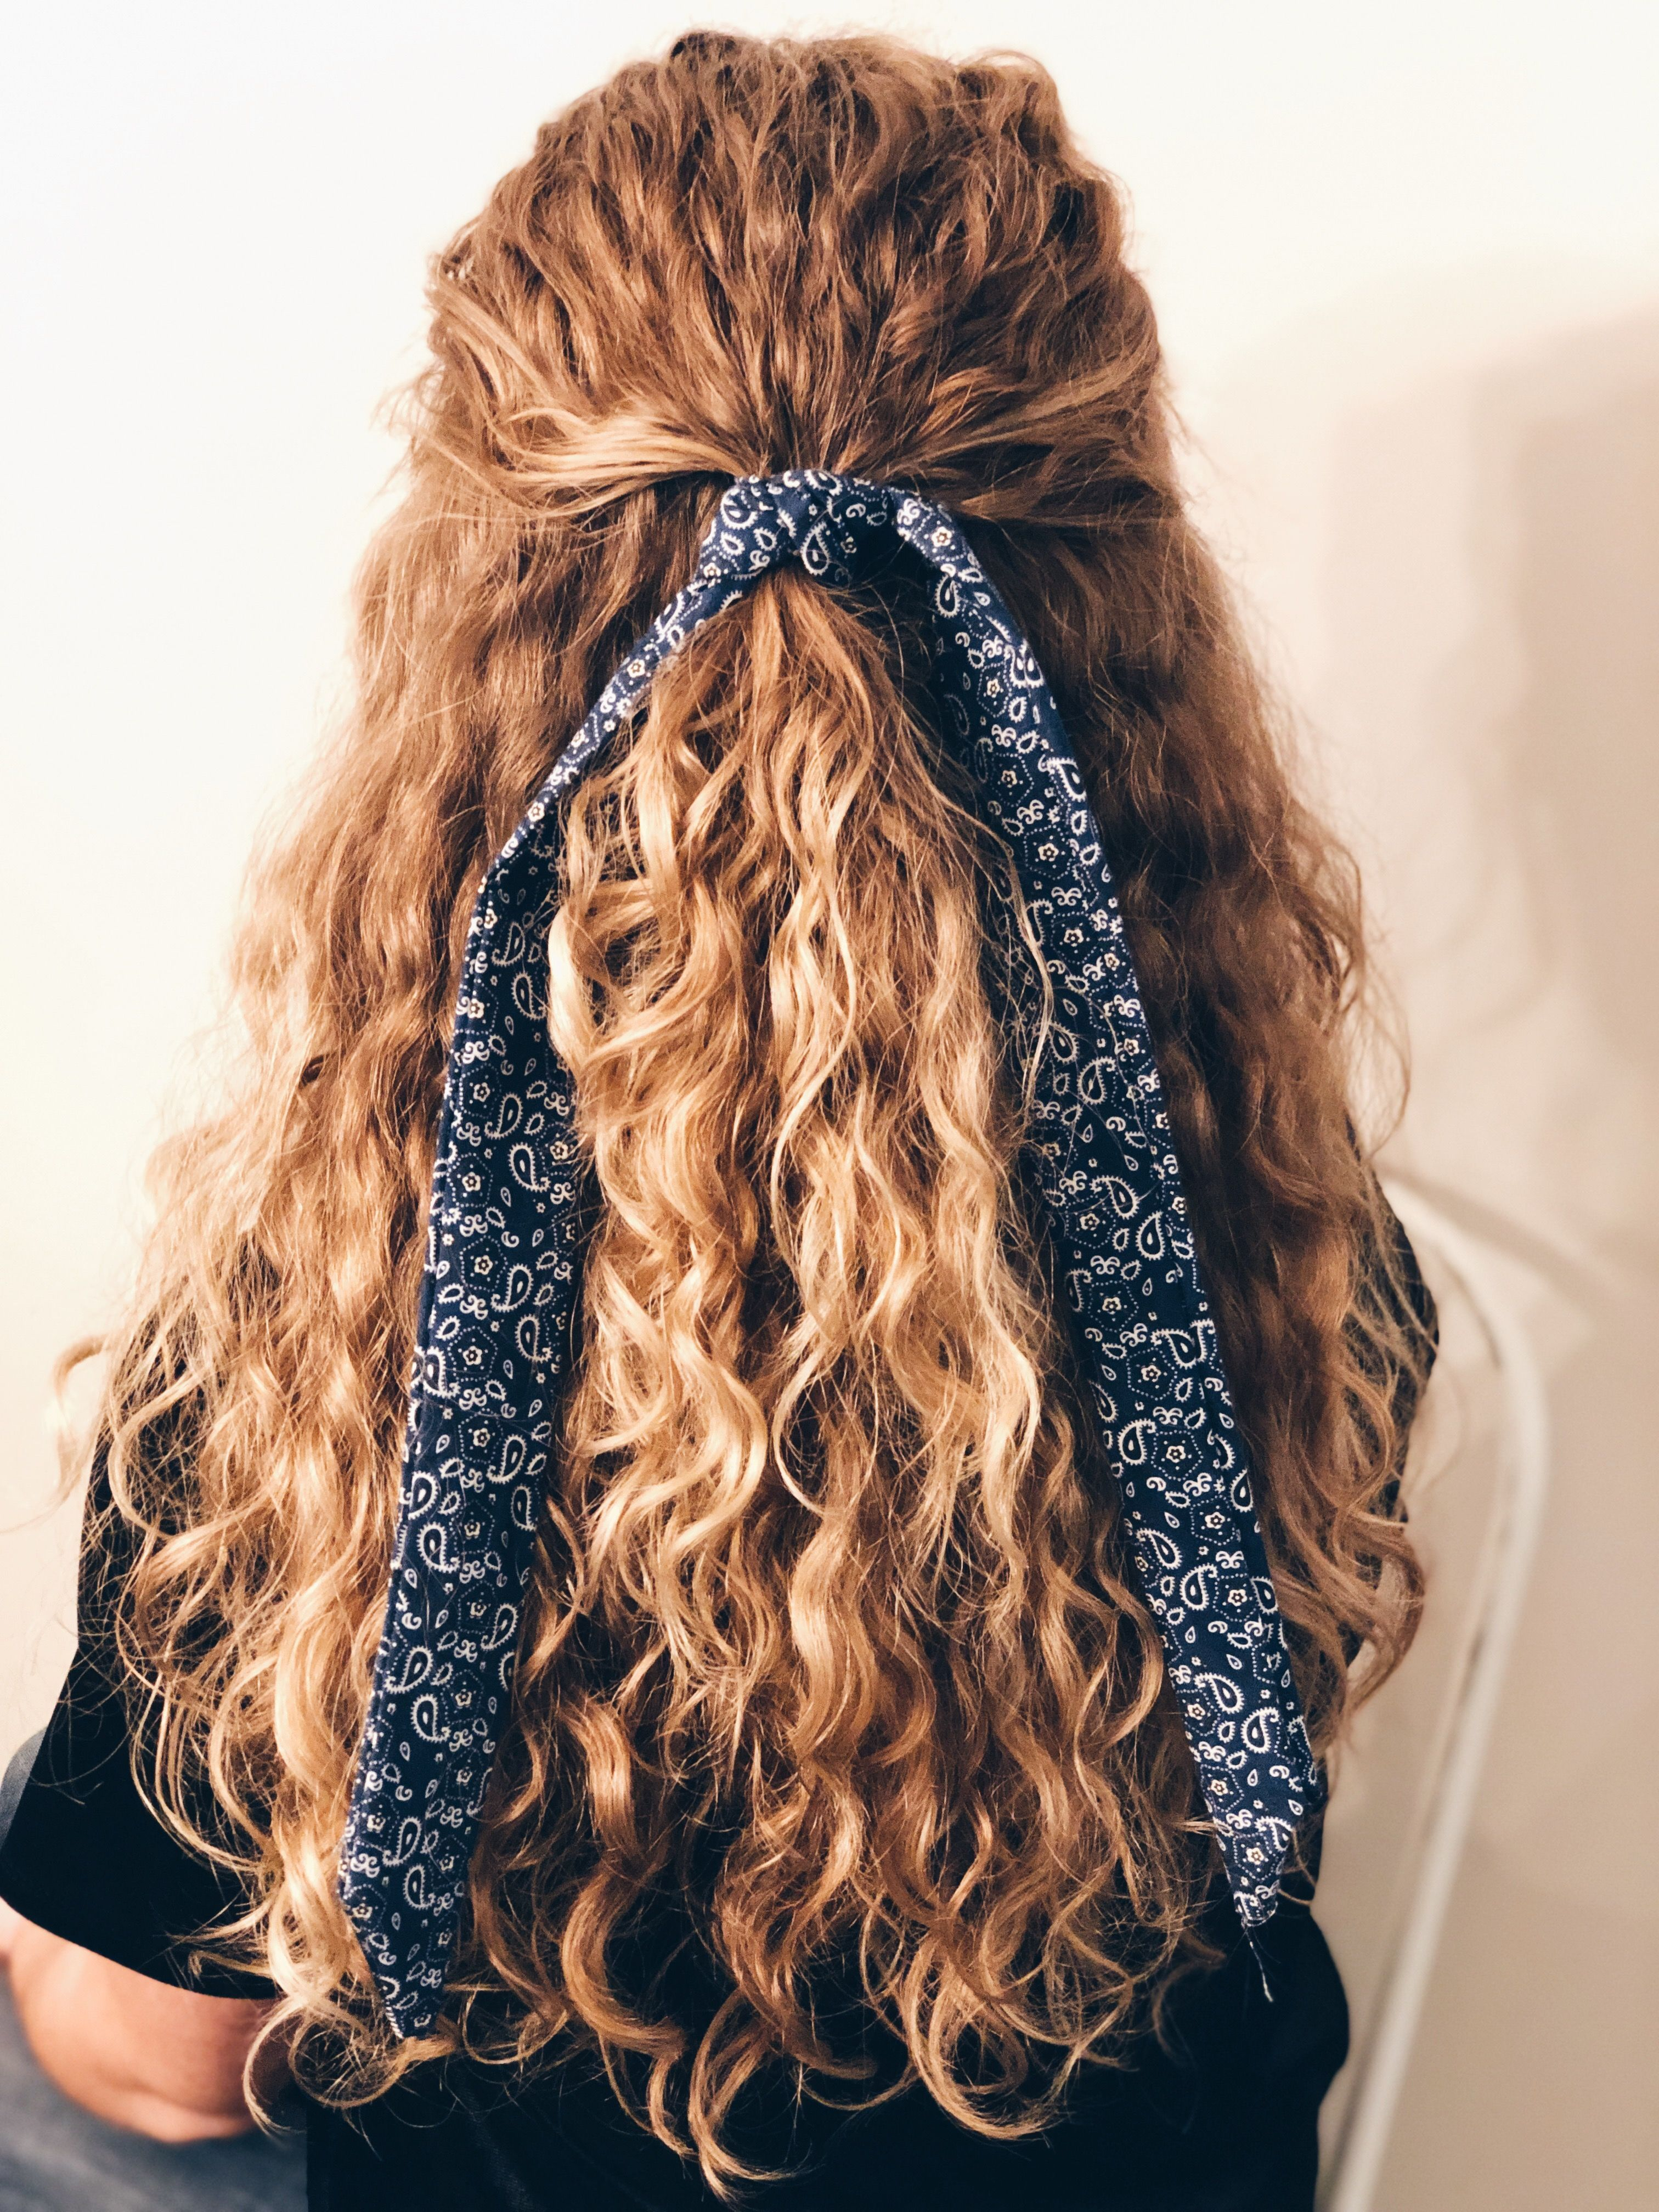 #curly haircut knoxville #curly easy hairstyles for school #curly hairstyles 90s #updo for curly hairstyles #curly hairstyles natural hair #curly hairstyles homecoming #curly hairstyles black girl #curly hairstyles natural hair